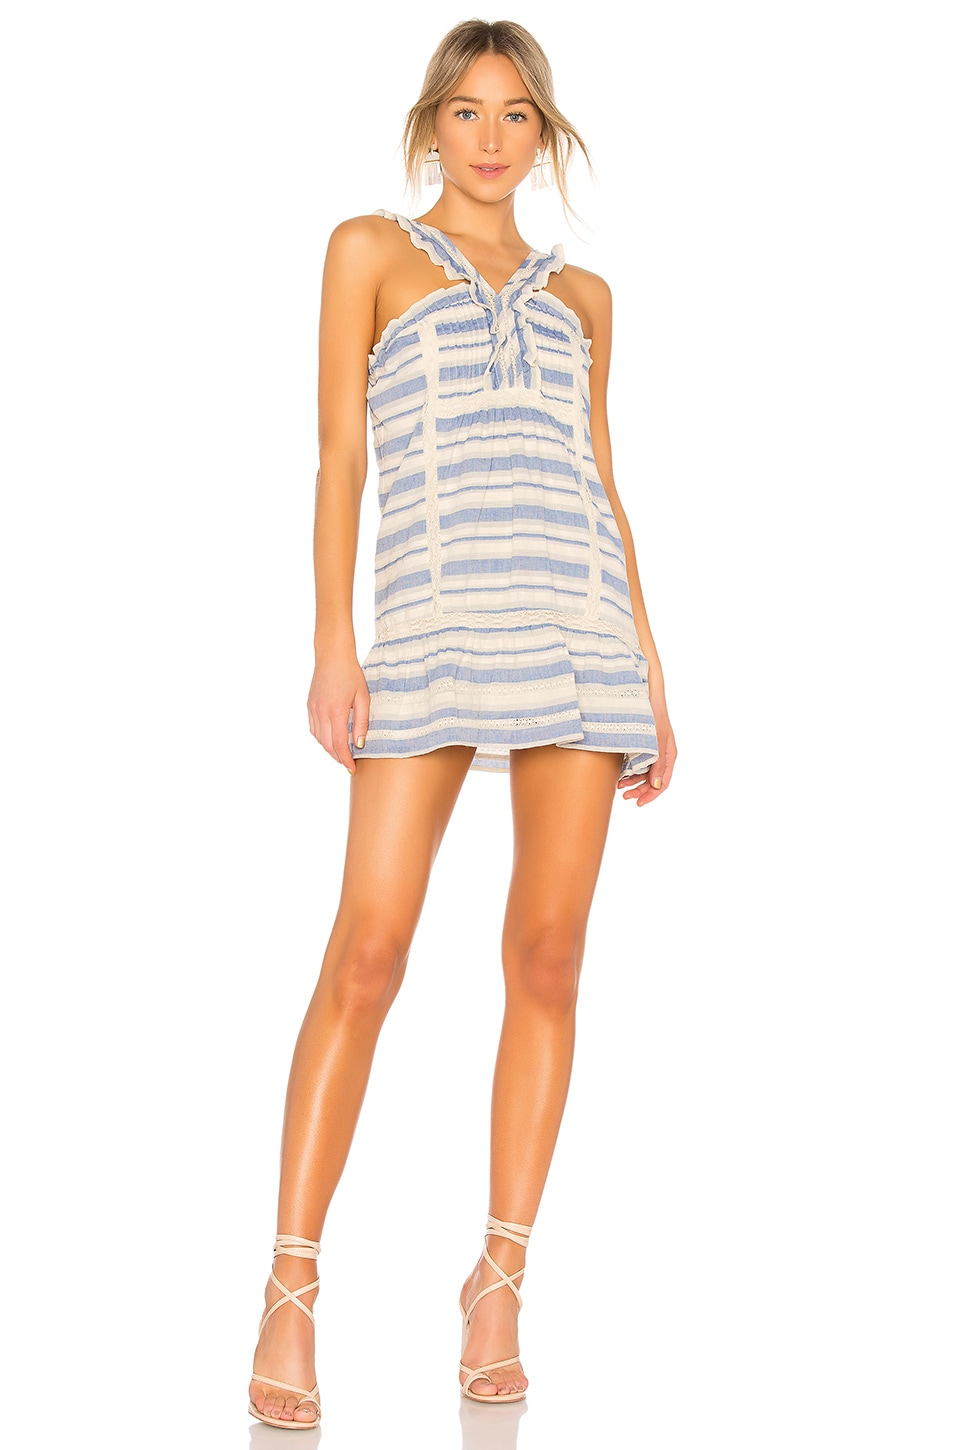 Tularosa Dani Dress in Denim Blue Stripe